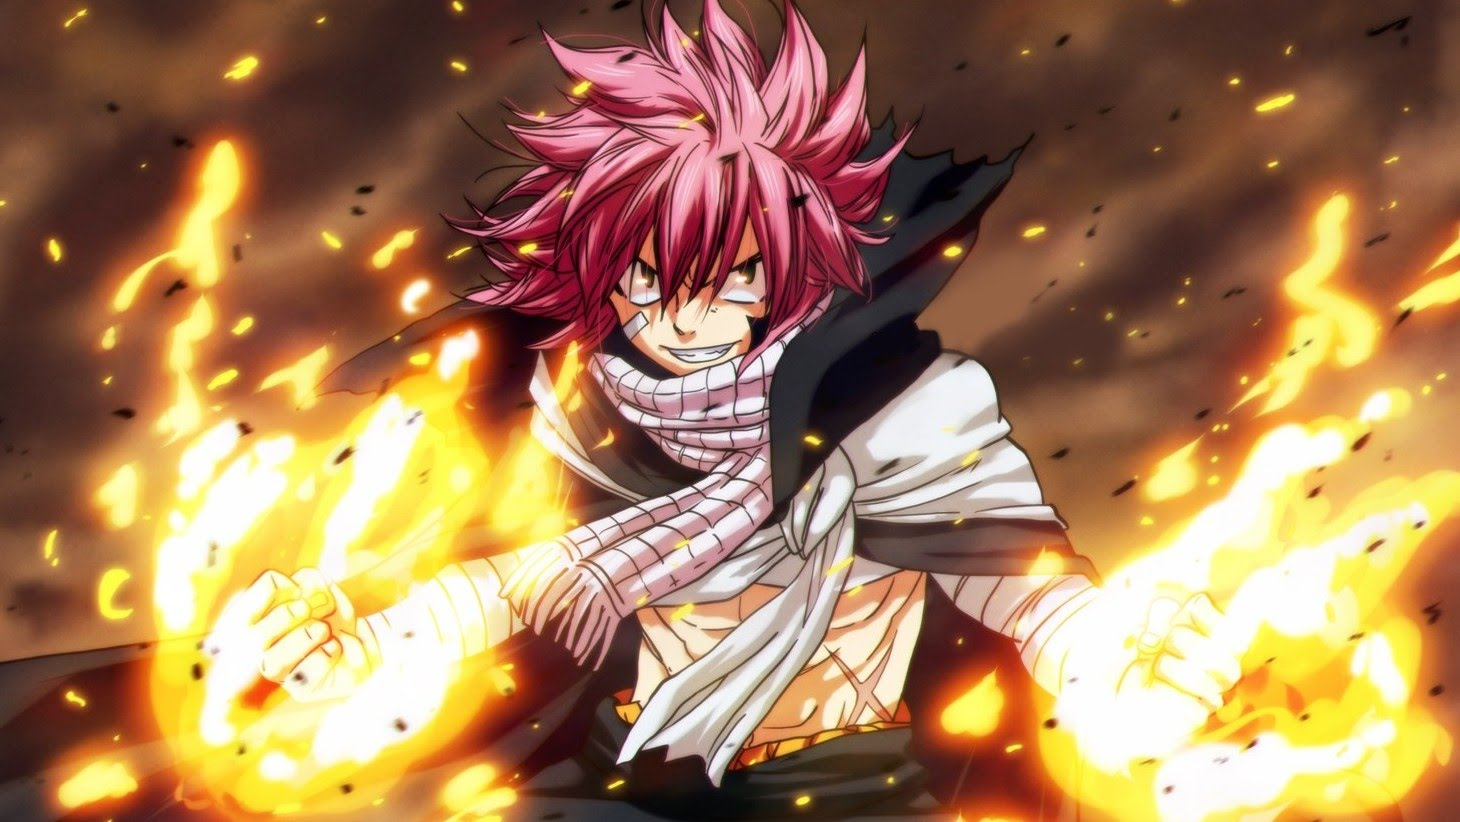 Fairy Tail Wallpapers Anime Hq Fairy Tail Pictures 4k